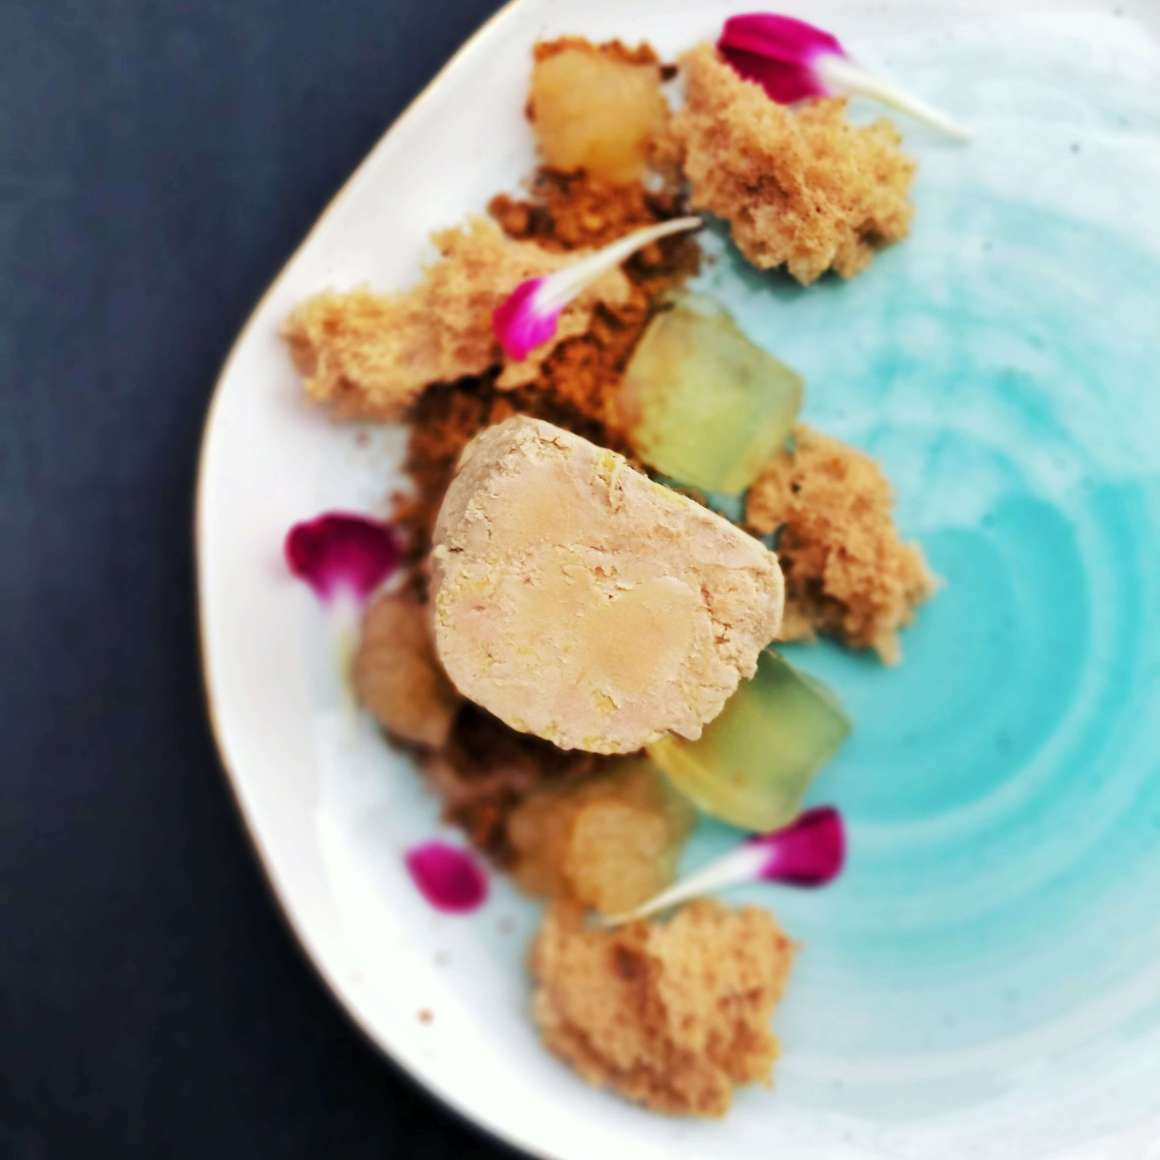 Fabulous Foie Gras with Pear, Gingerbread, Hazelnut and Sauternes | Berries and Spice